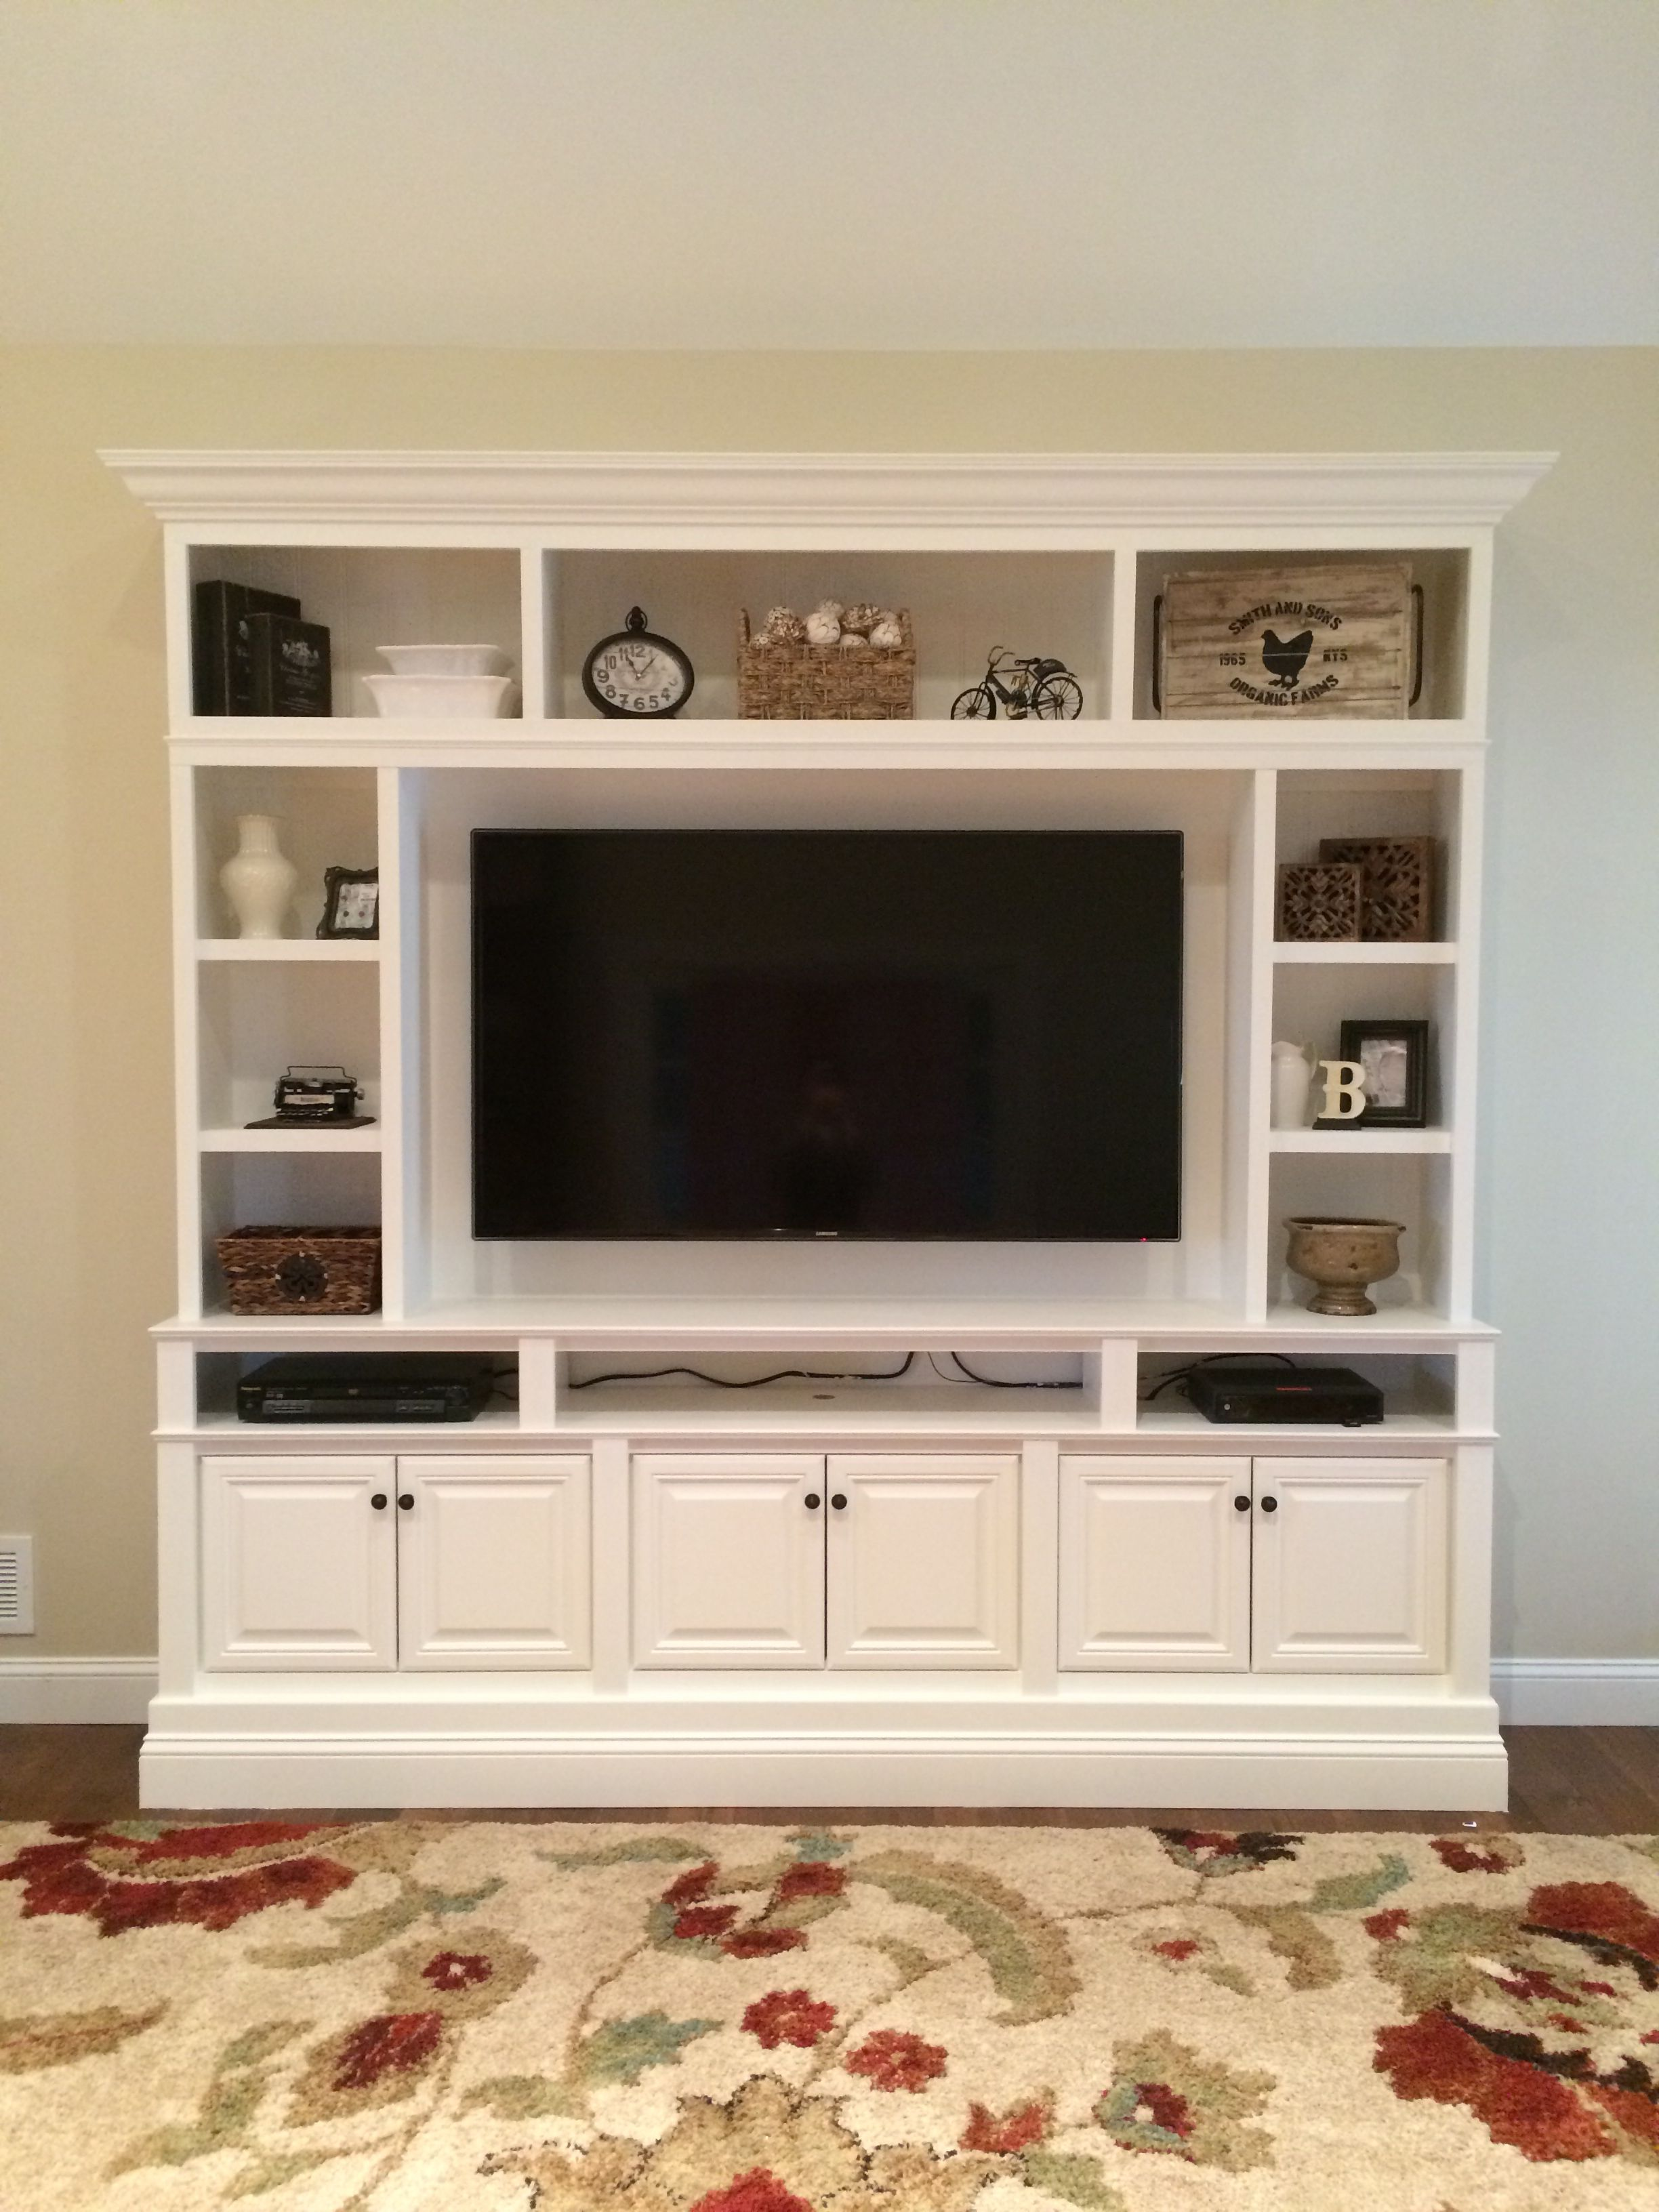 diy entertainment center ideas and designs for your new home fordownright simple this is my diy built in wall unit made for 60\